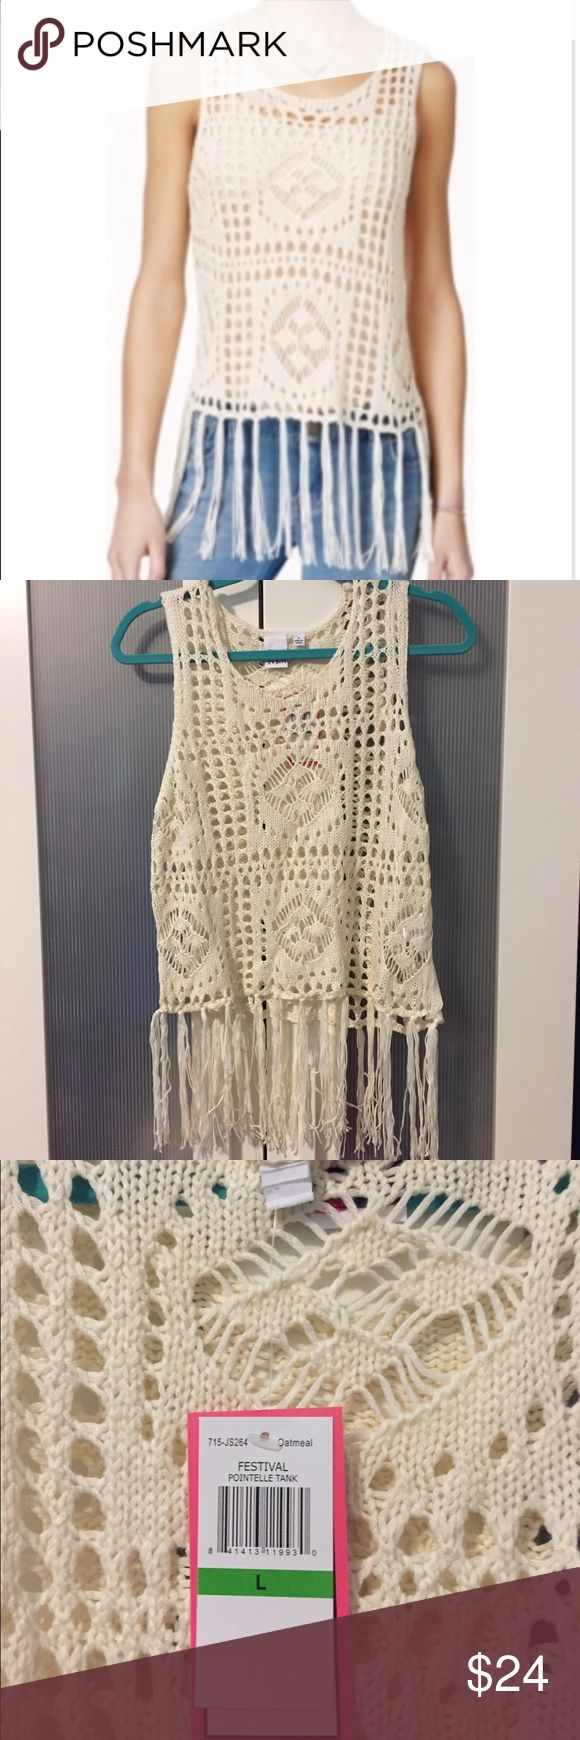 **NEW** Adorable Boho Crochet Fringe Tank NWT This great crochet tank is perfect over a bandeau, bikini top, or tank. Very light sweater-ish material. Cream colored. Machine wash cold. From a non-smoking and pet free home. New with tags and never worn. Tops Tank Tops